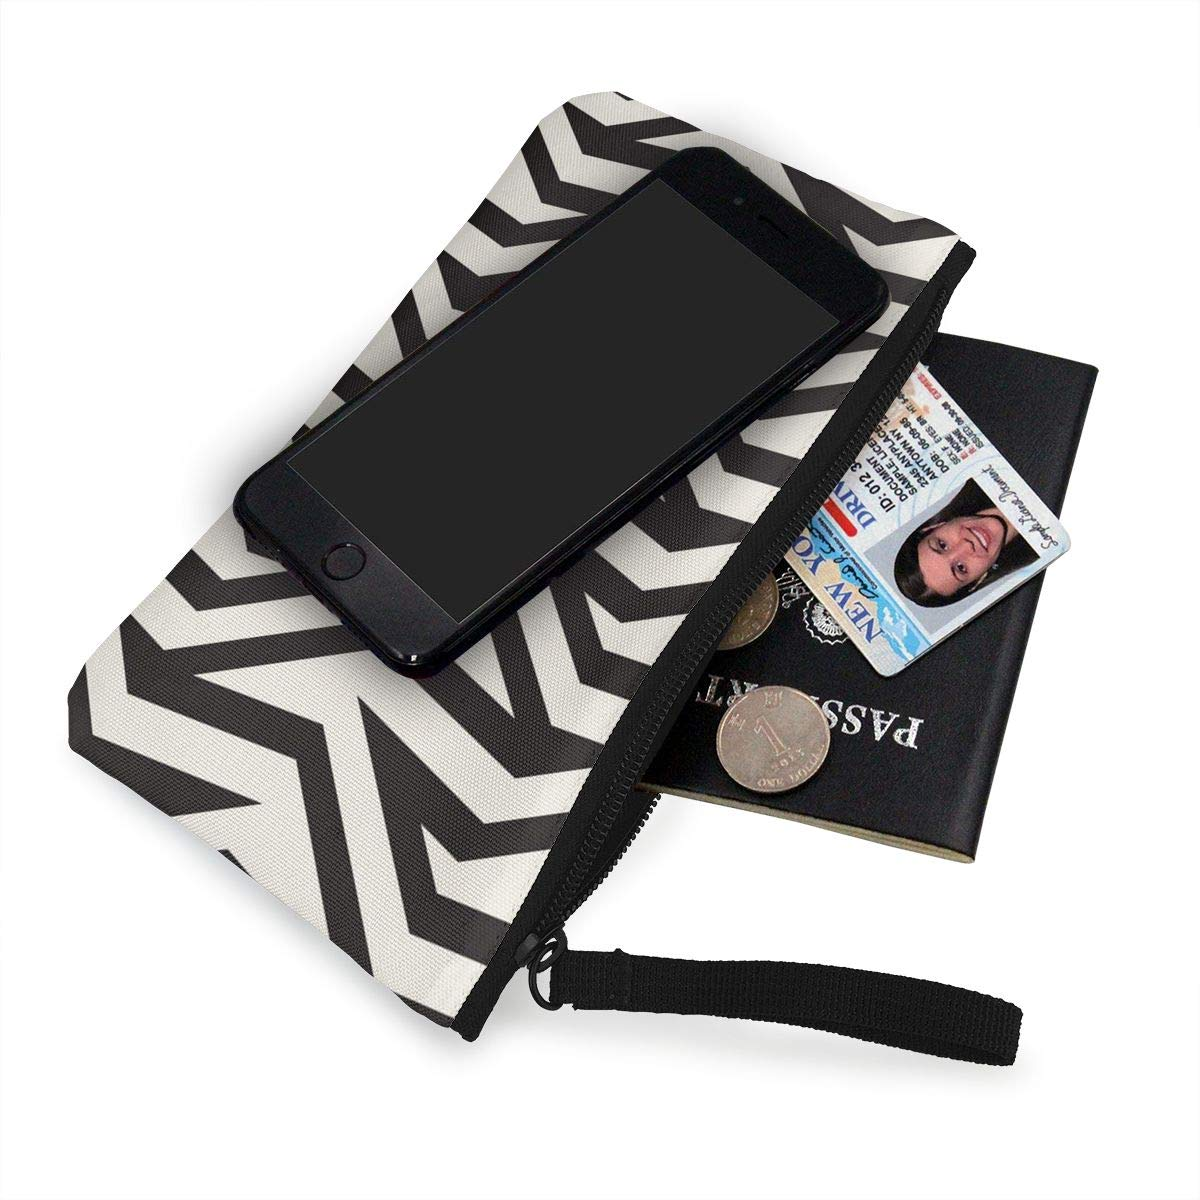 Yamini Optical Effect of Zigzag Avant-Garde Fringes Cute Looking Coin Purse Small and Exquisite Going Out to Carry Purse